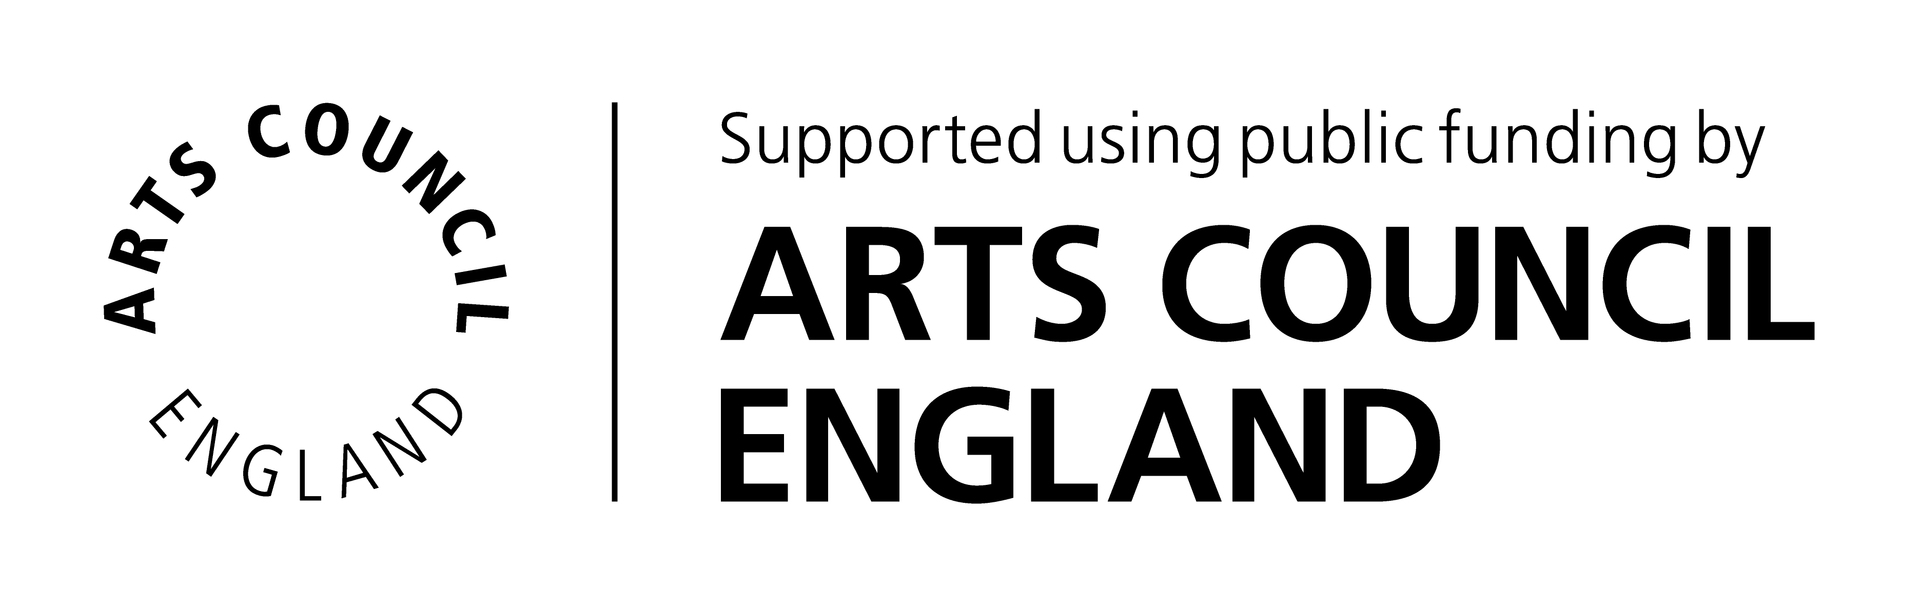 Arts Council Grant Logo